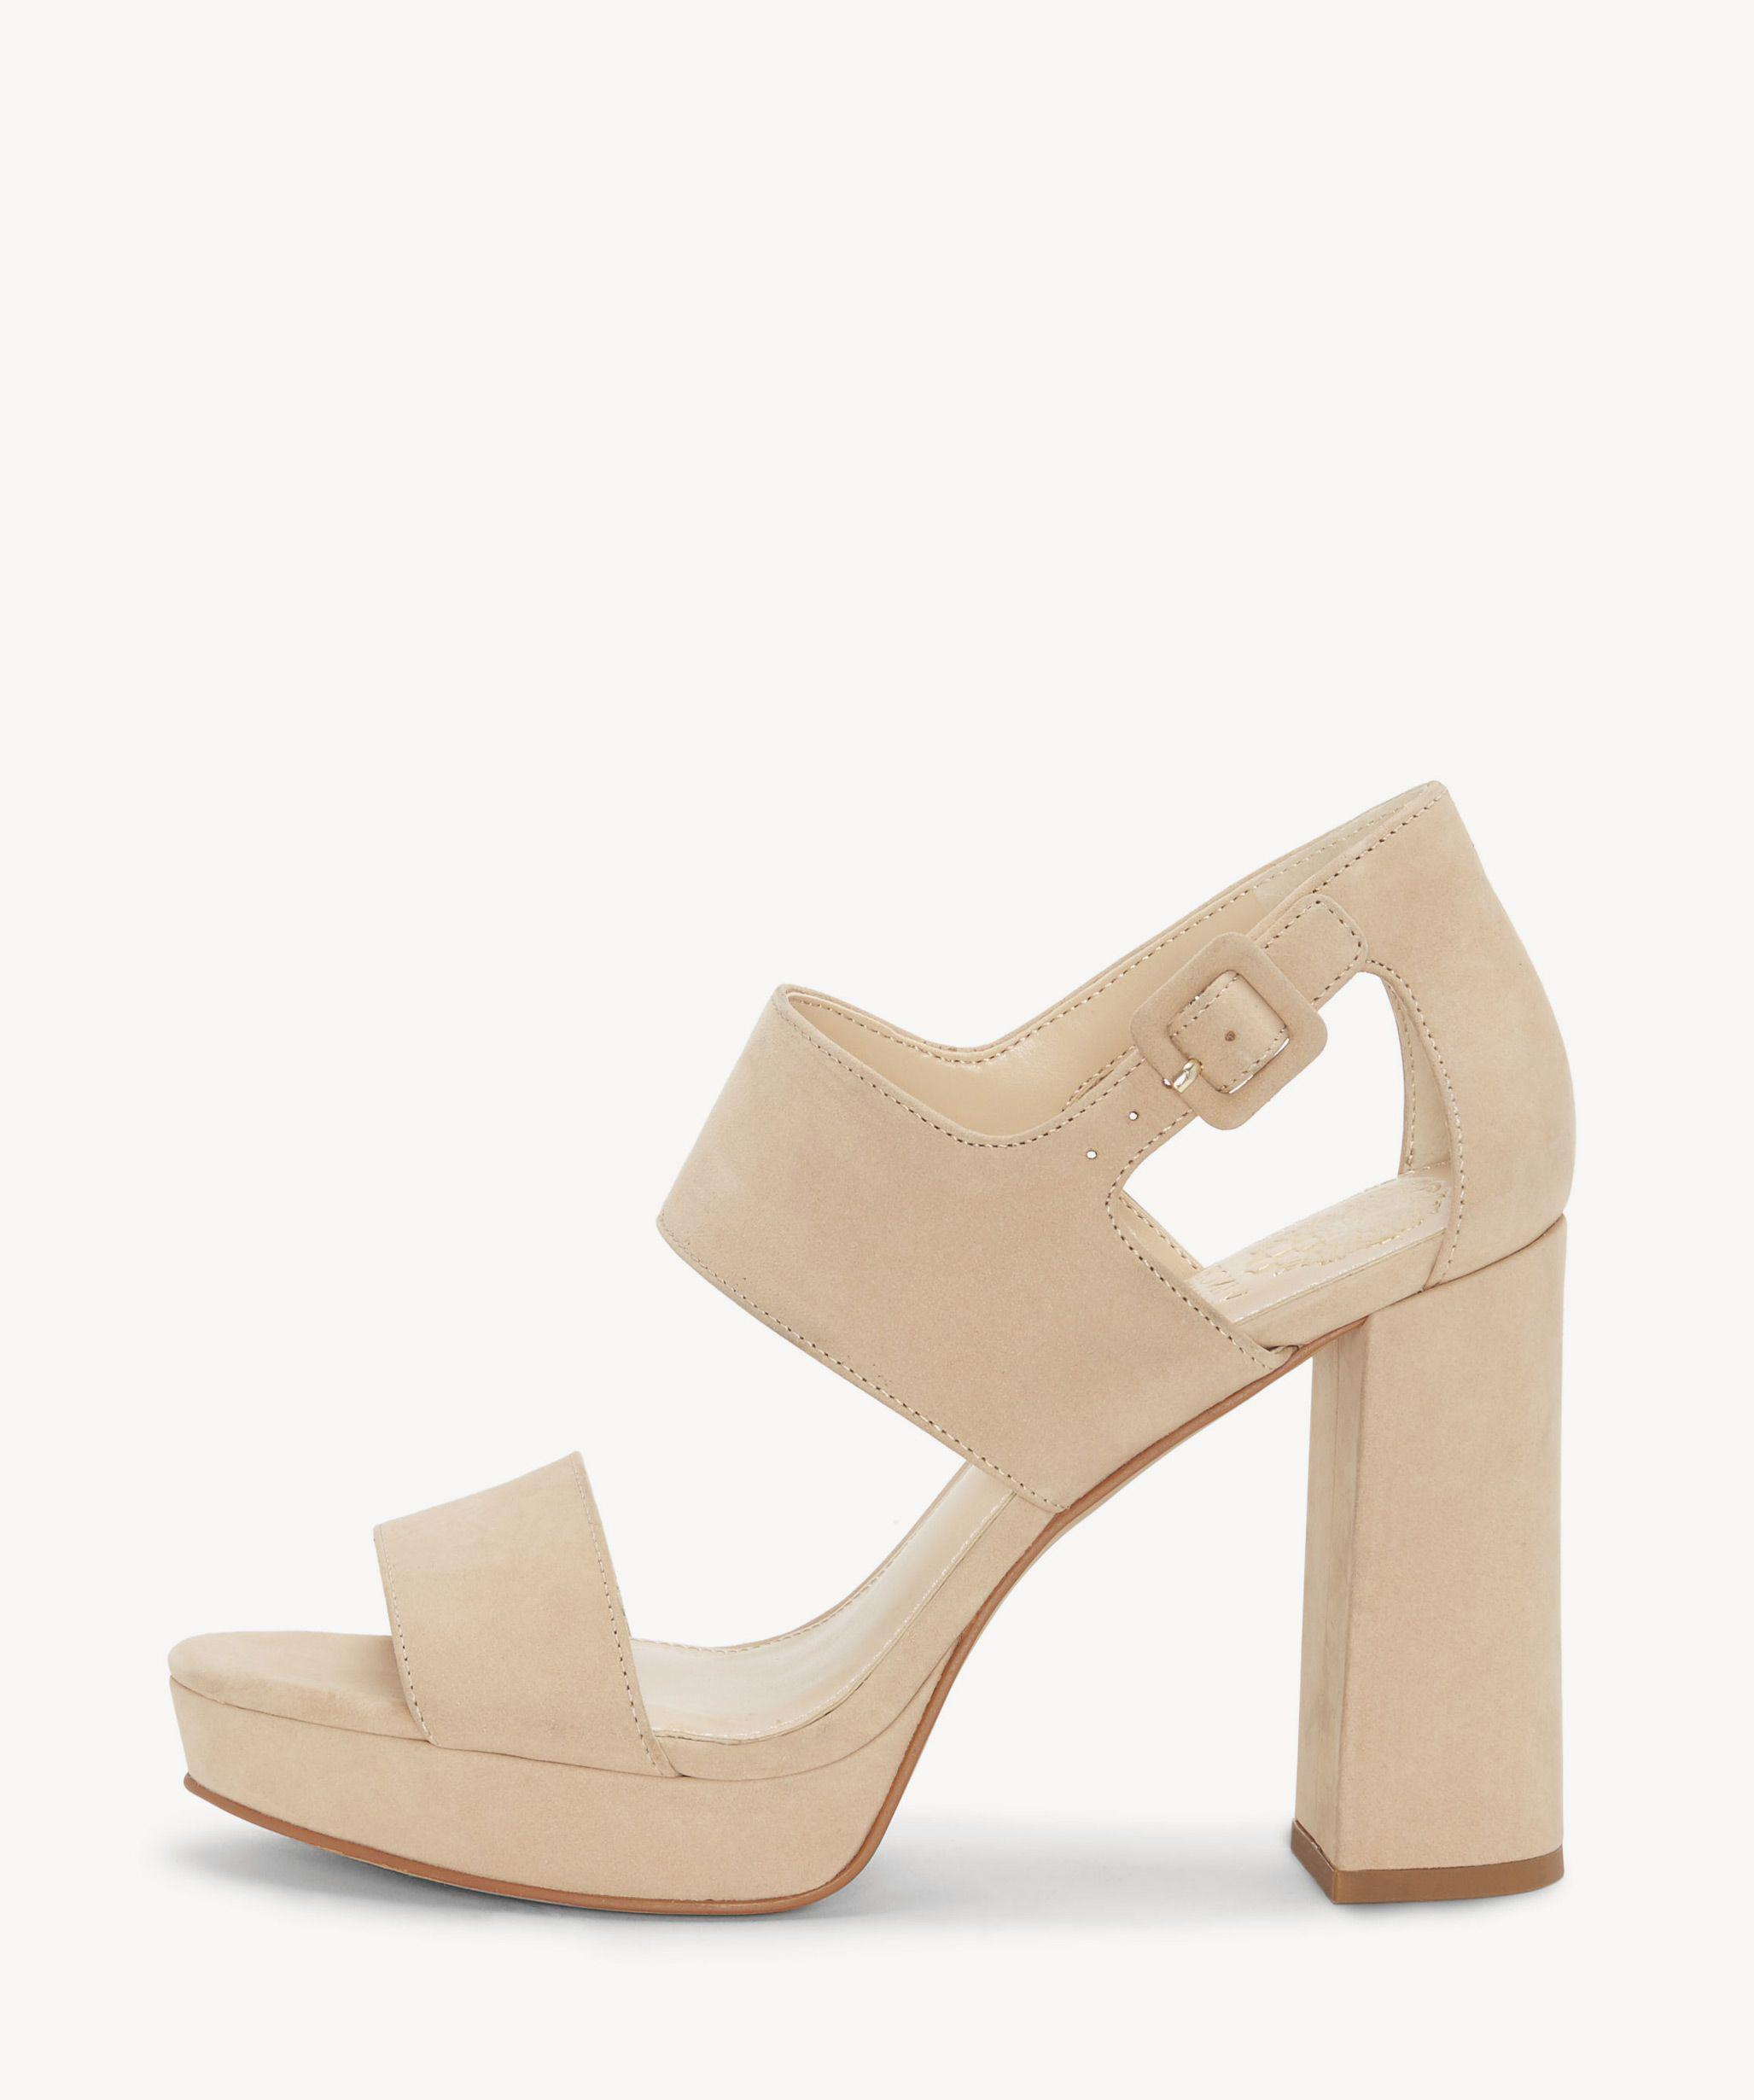 70005263a122 Lyst - Vince Camuto Jayvid Block Heel Sandal in Natural